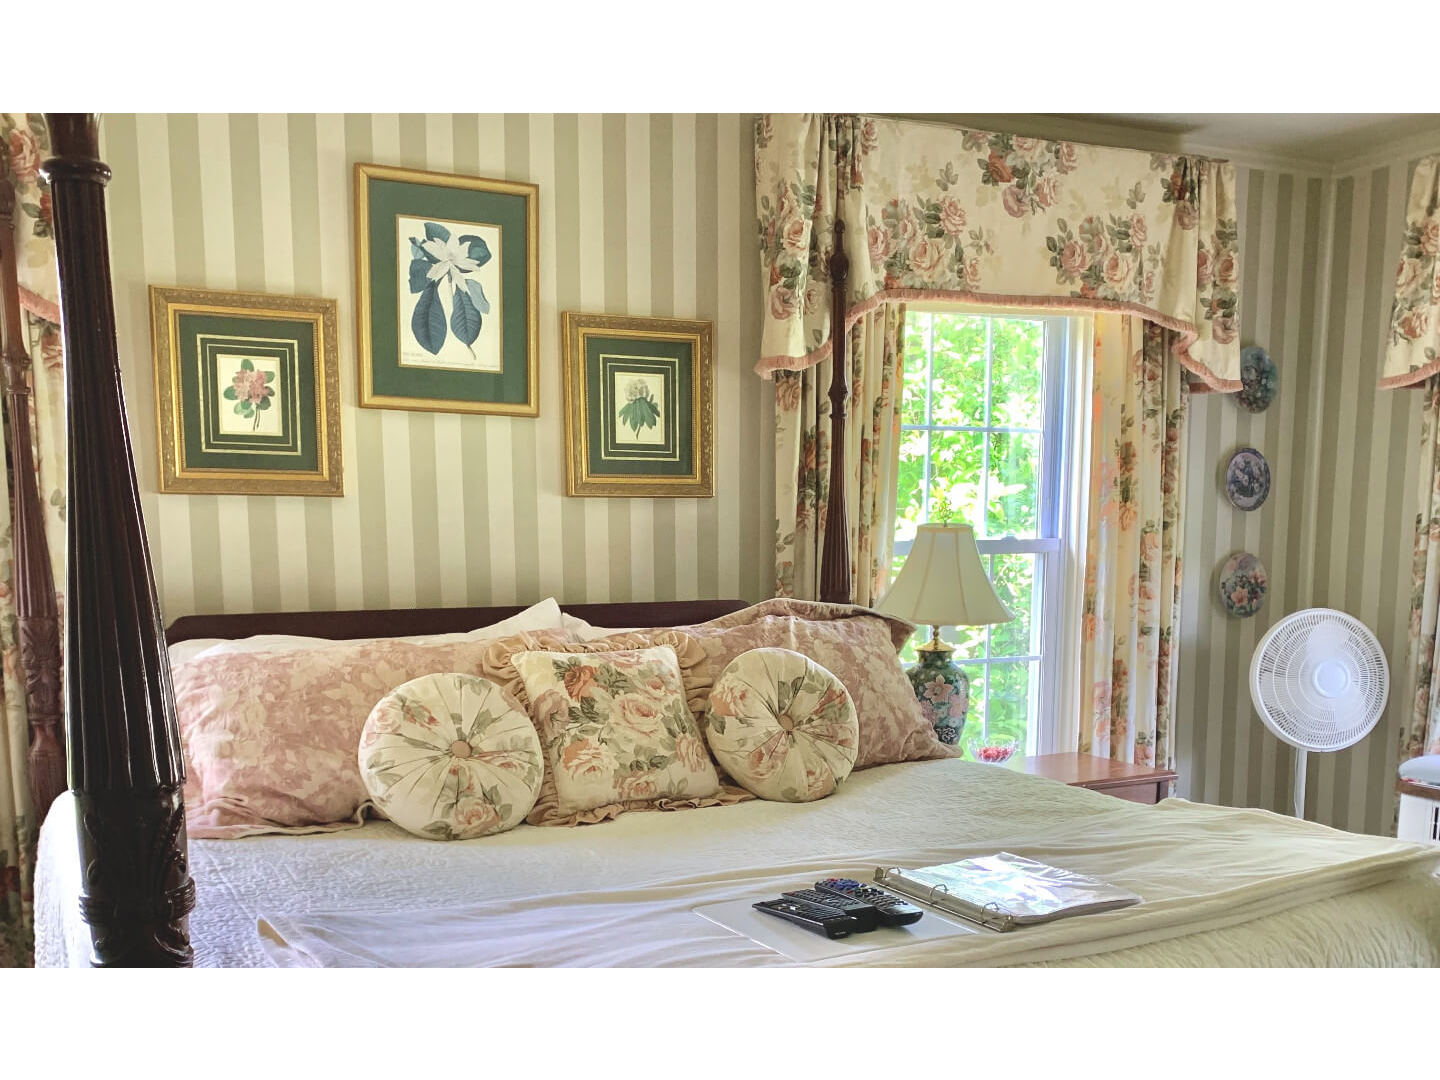 Sheffield Bed and Breakfast